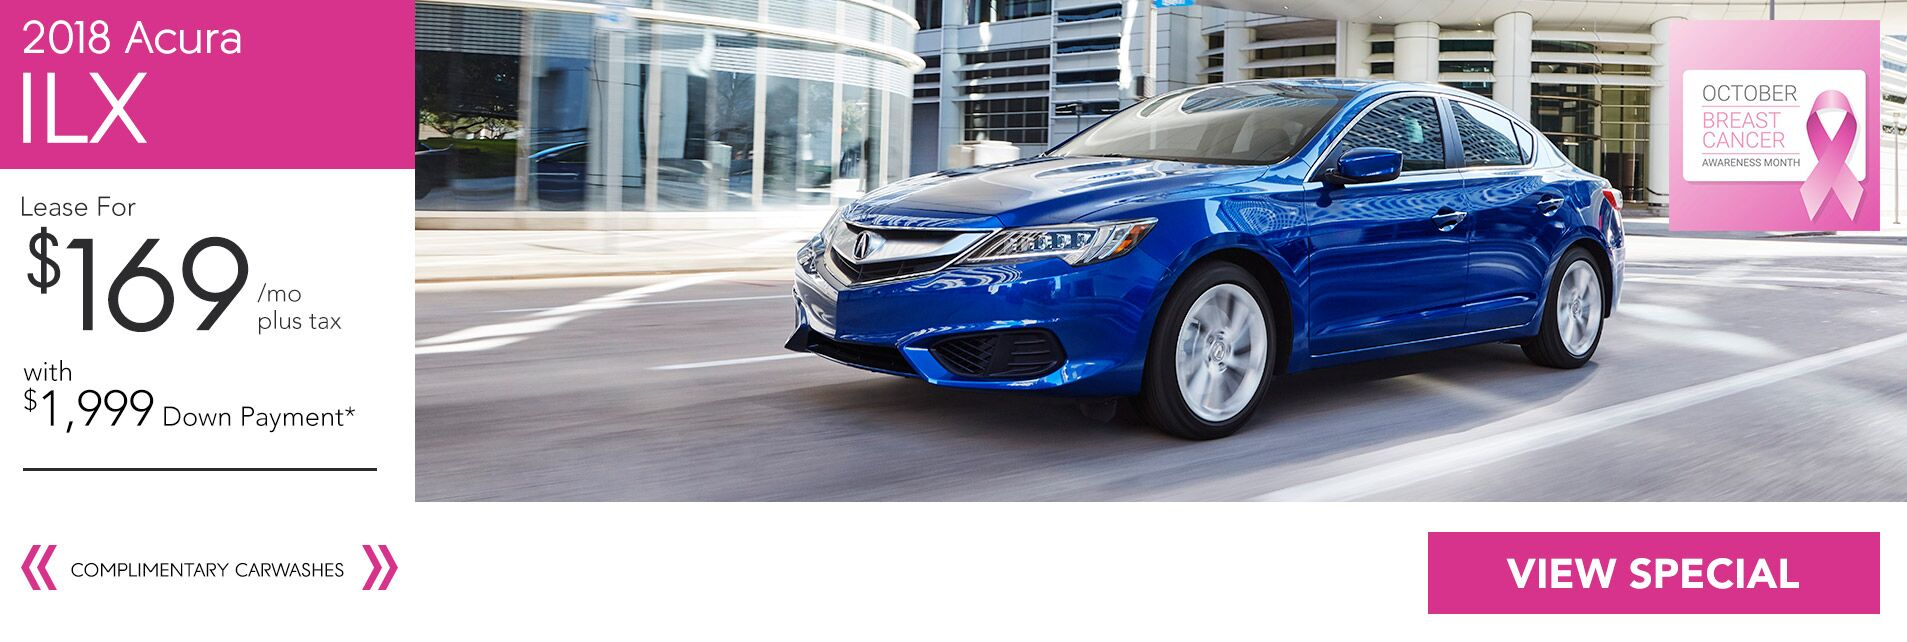 Lease a 2018 Acura ILX for $169/36Mo. with $1,999 Down